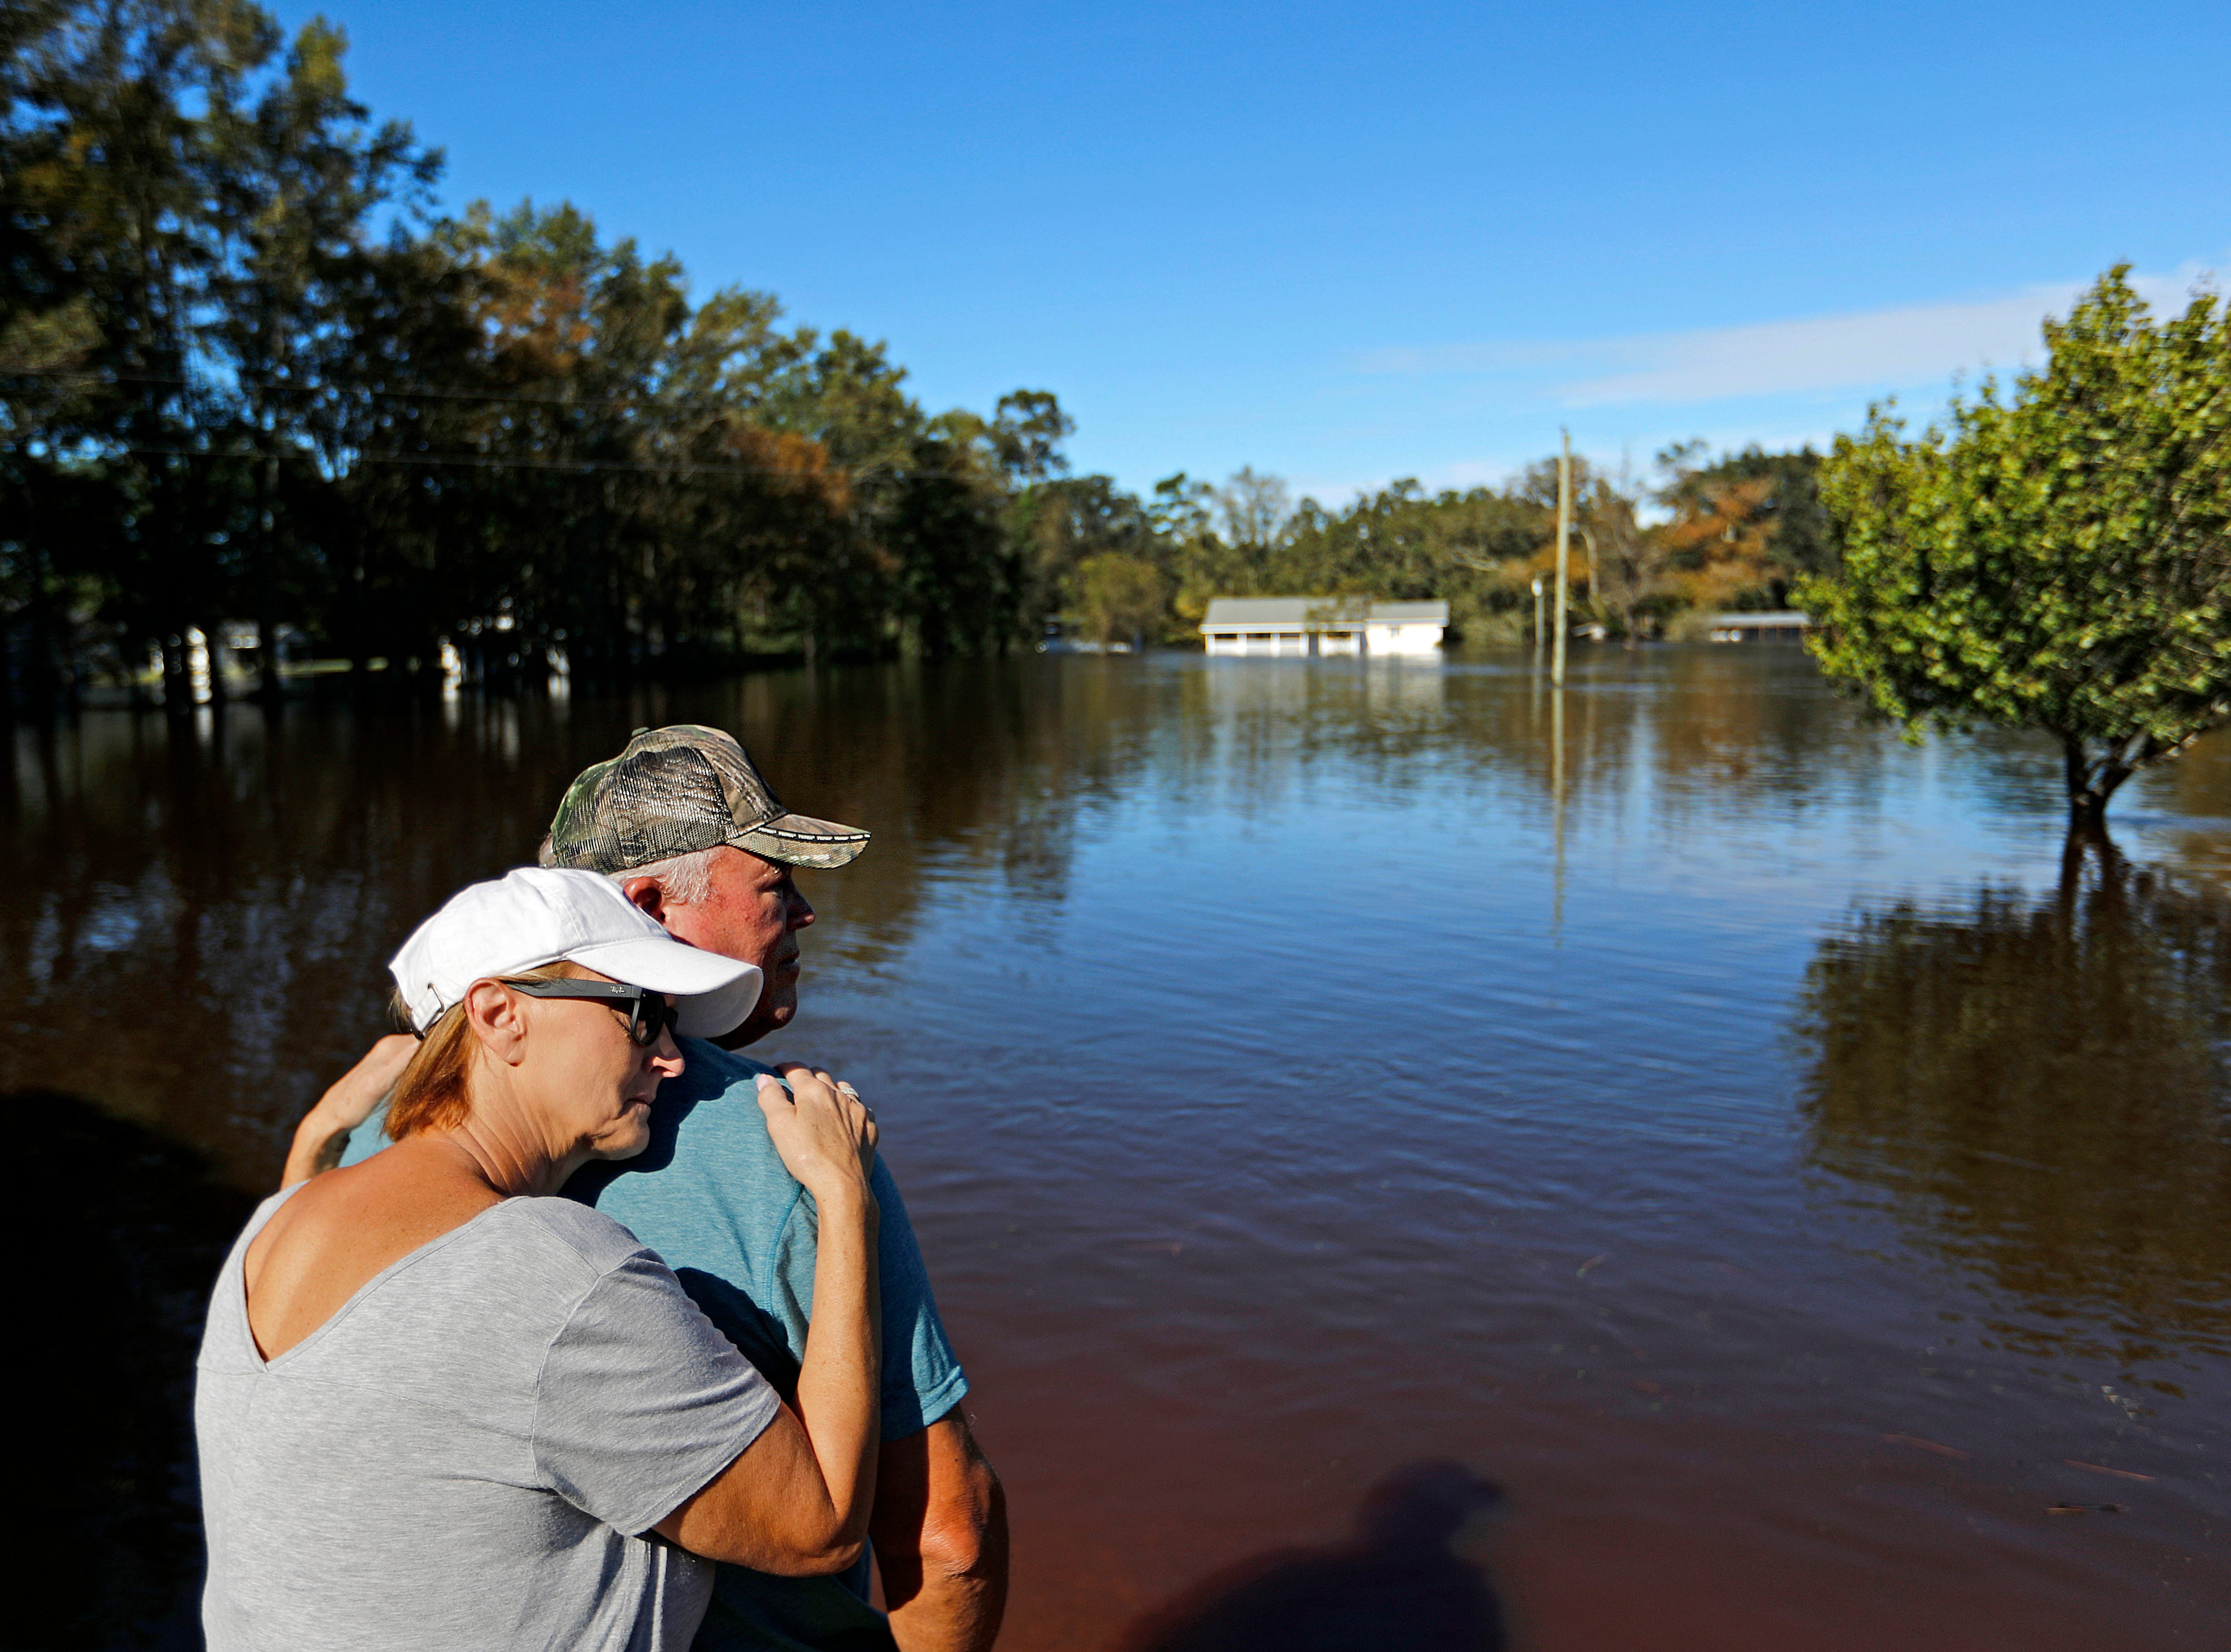 "Dianna Wood, embraces her husband Lynn, as they look out over their flooded property as the Little River continues to rise in the aftermath of Hurricane Florence in Linden, N.C., Tuesday, Sept. 18, 2018. ""I'm still hopeful,"" said Lynn about his home which currently has water up to the front step. ""In another foot, I'll be heartbroken,"" he added."